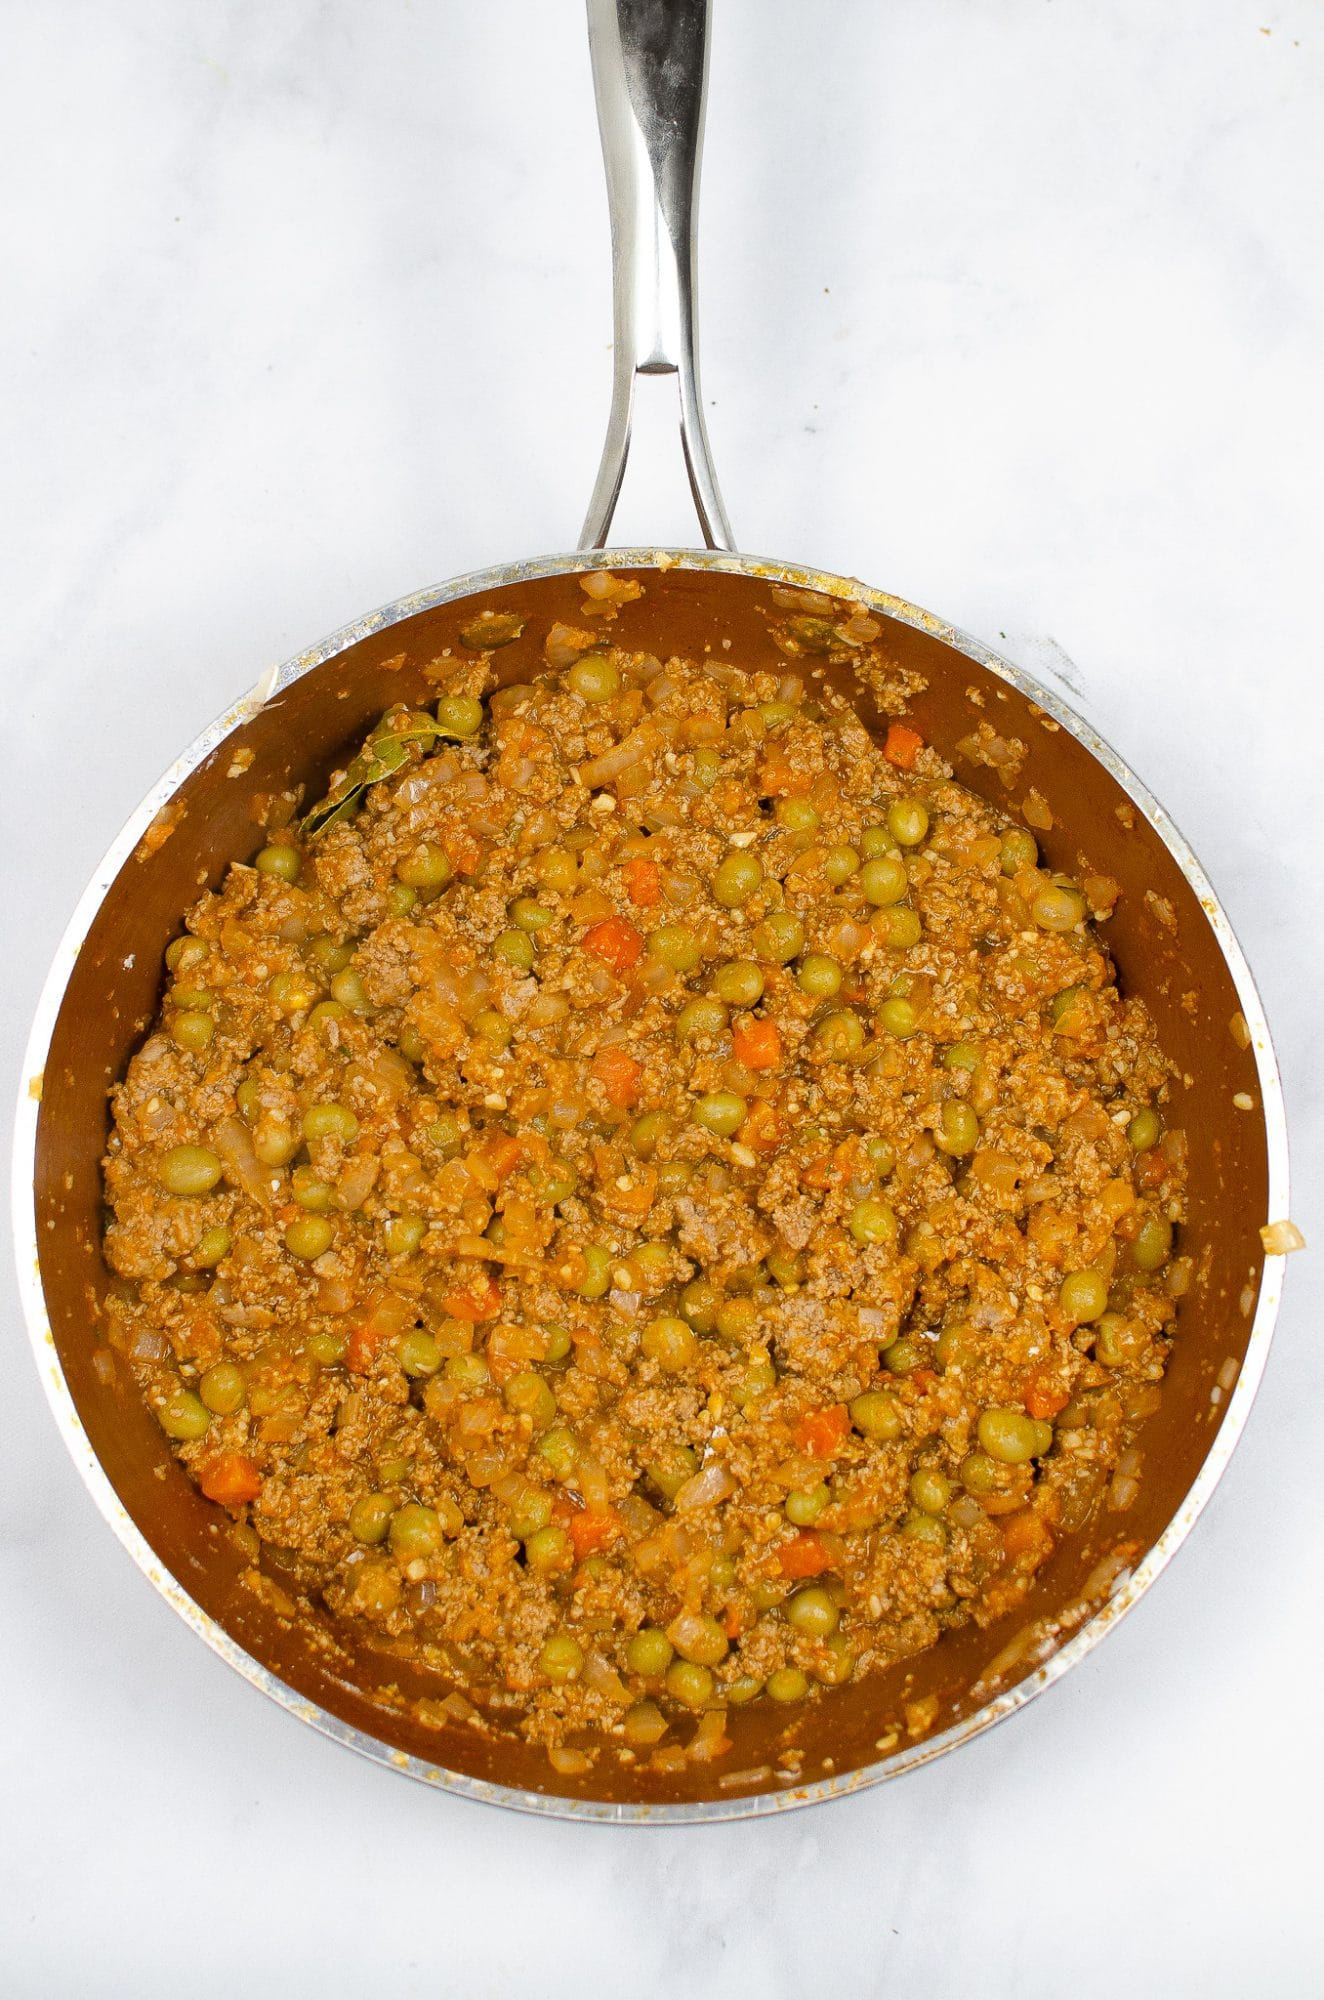 cooked ground meat and onions in pan